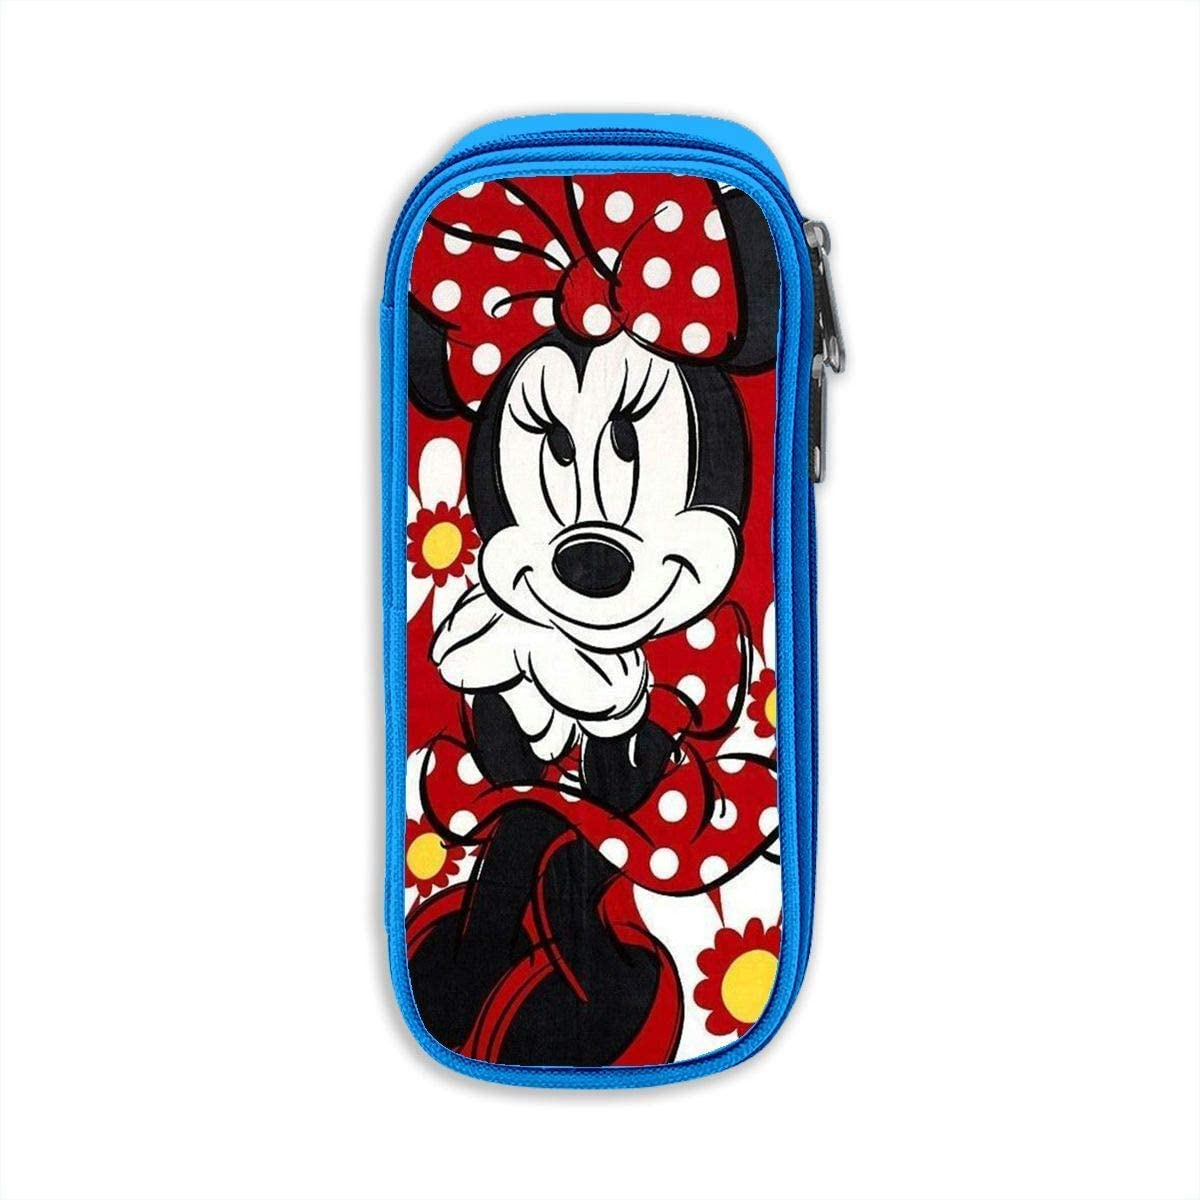 Estuche Bolso Beautiful Minnie Print Pencil Case Pens Pouch Bag Pen Makeup Box, Stylish Student Boxes Office Bag Stationary Case Cosmetic Bag with Zipper: Amazon.es: Equipaje